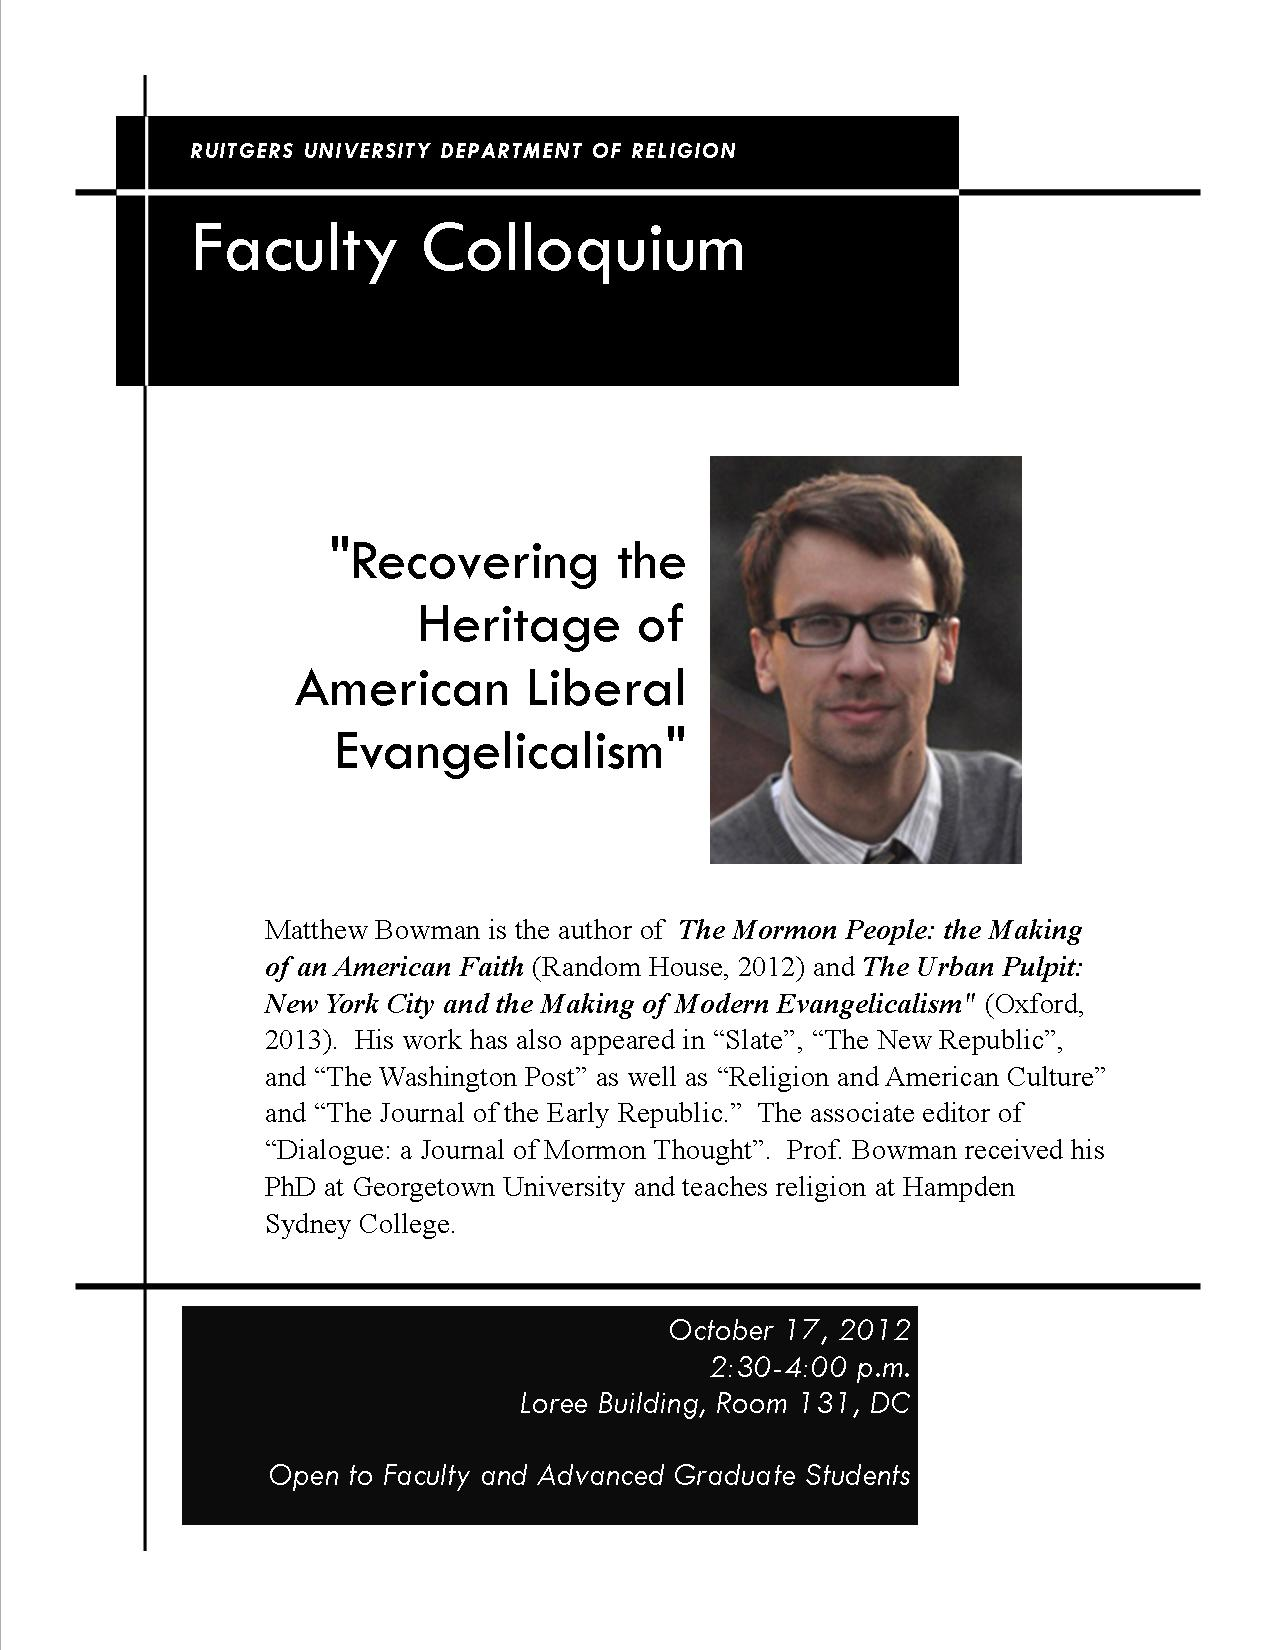 """October 17, 2012 (Faculty Colloquium): """"Recovering the ..."""